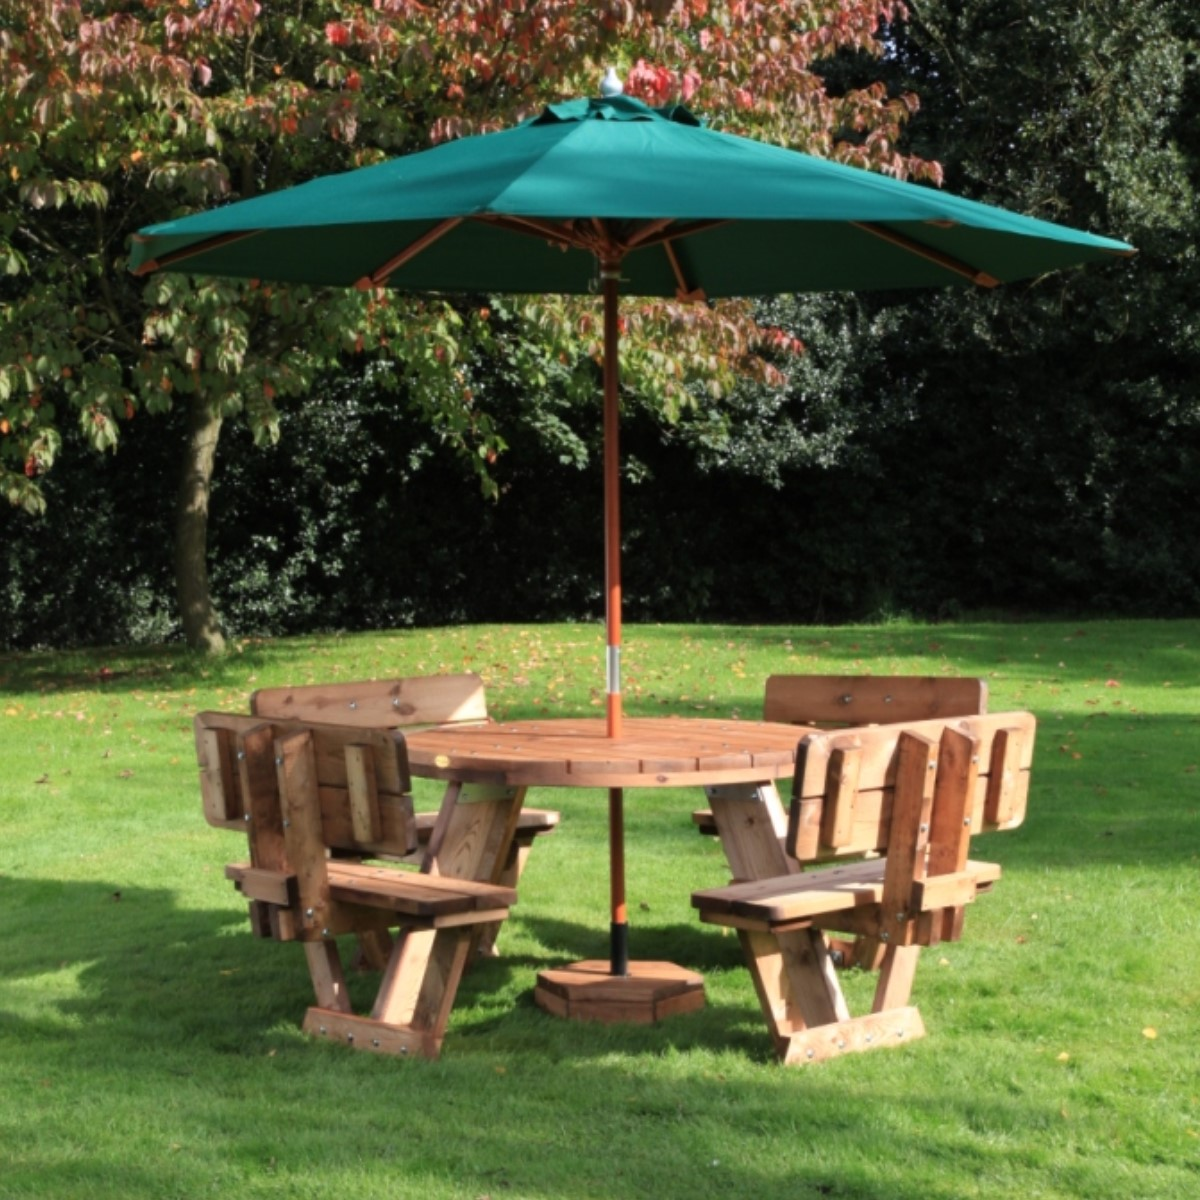 Circular Seater With Backrests Woodberry - Picnic table with backrest